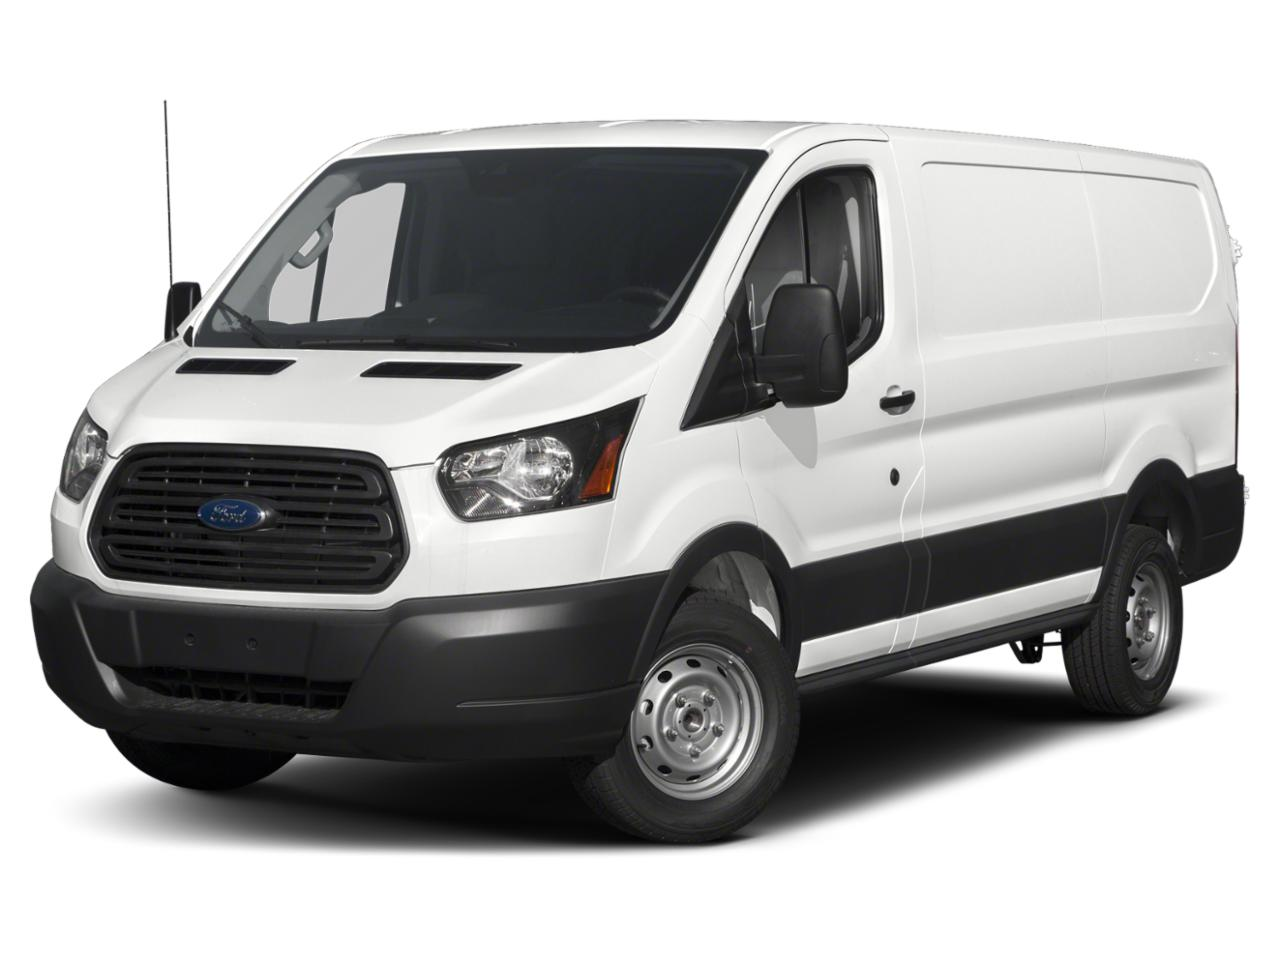 2019 Ford Transit Van Vehicle Photo in Danbury, CT 06810